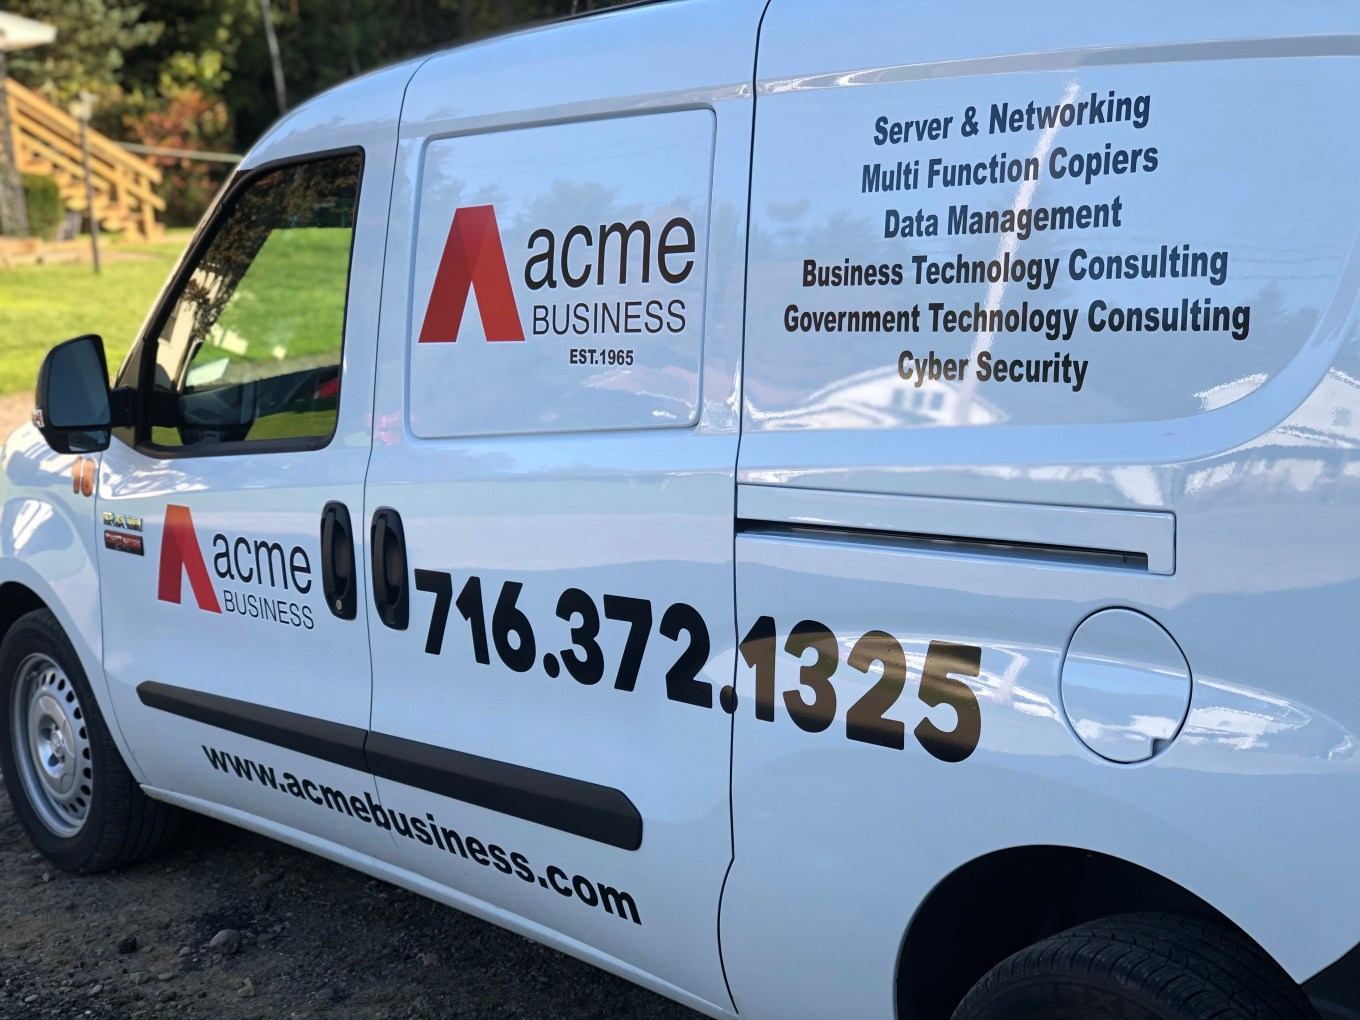 Custom Vinyl Graphics For Your Company or Personal Vehicle in Olean, NY.